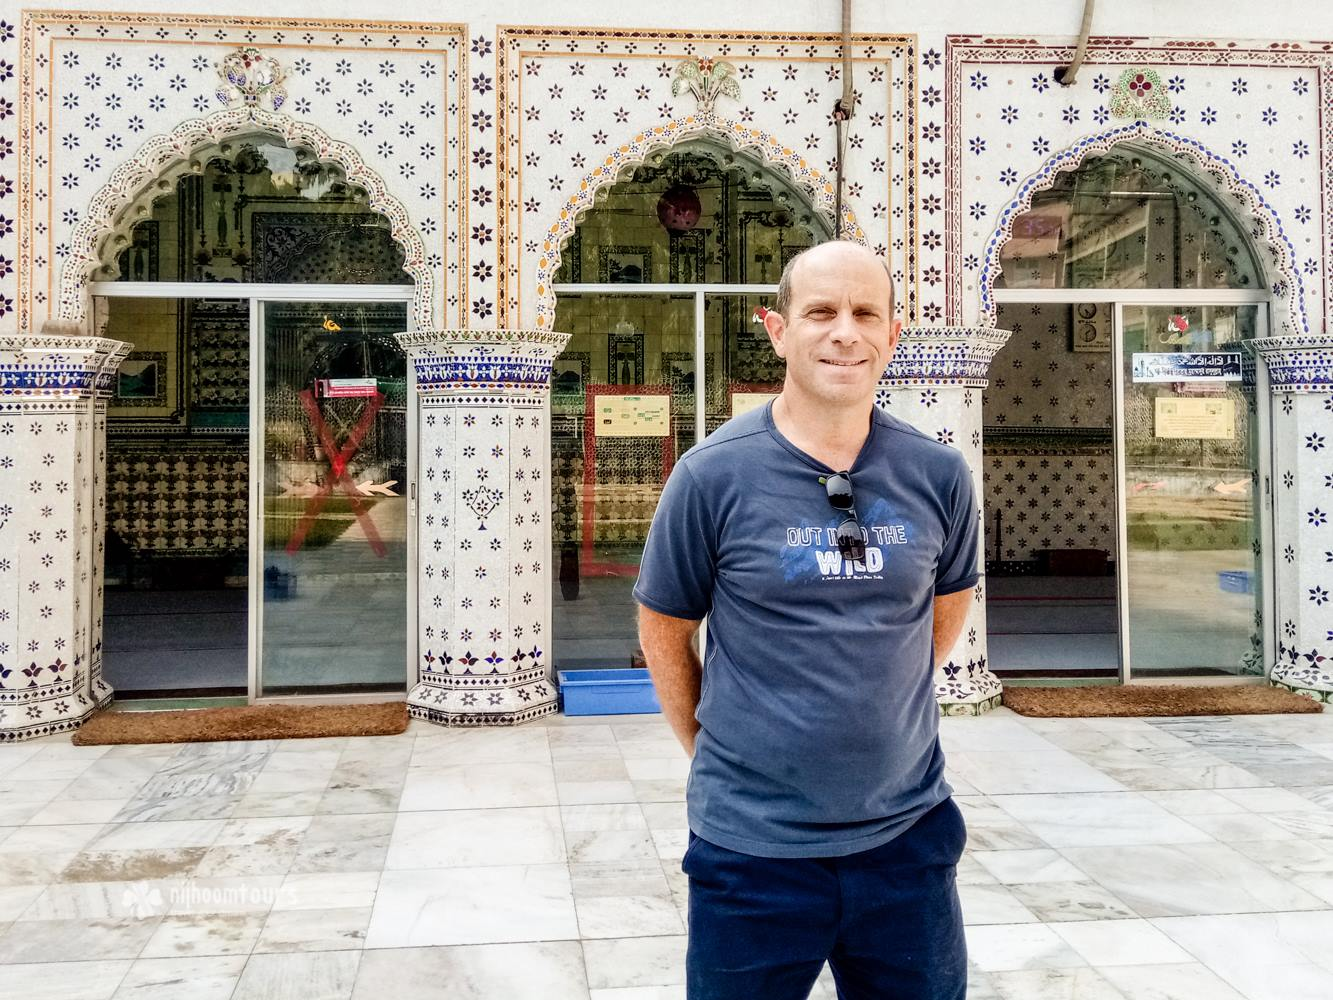 Charles Woodrow from England, who visited Dhaka on November, 2016, on a business trip